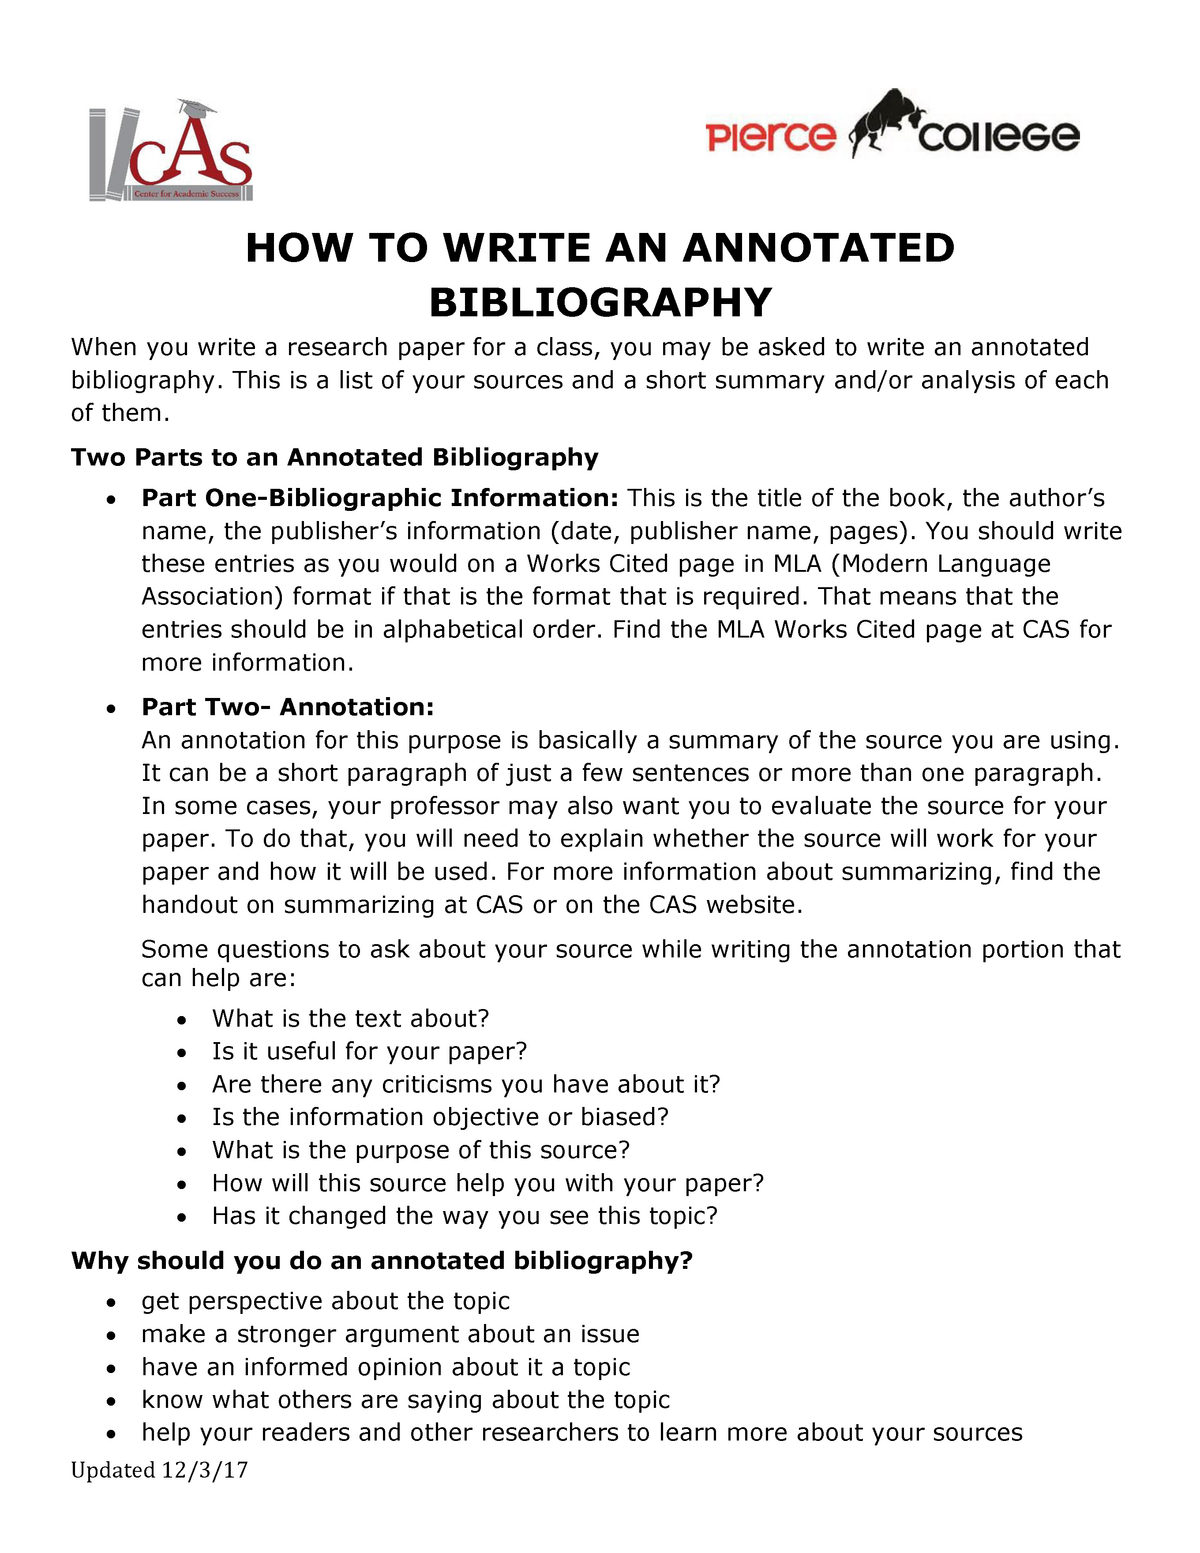 How to make annotated bibliography